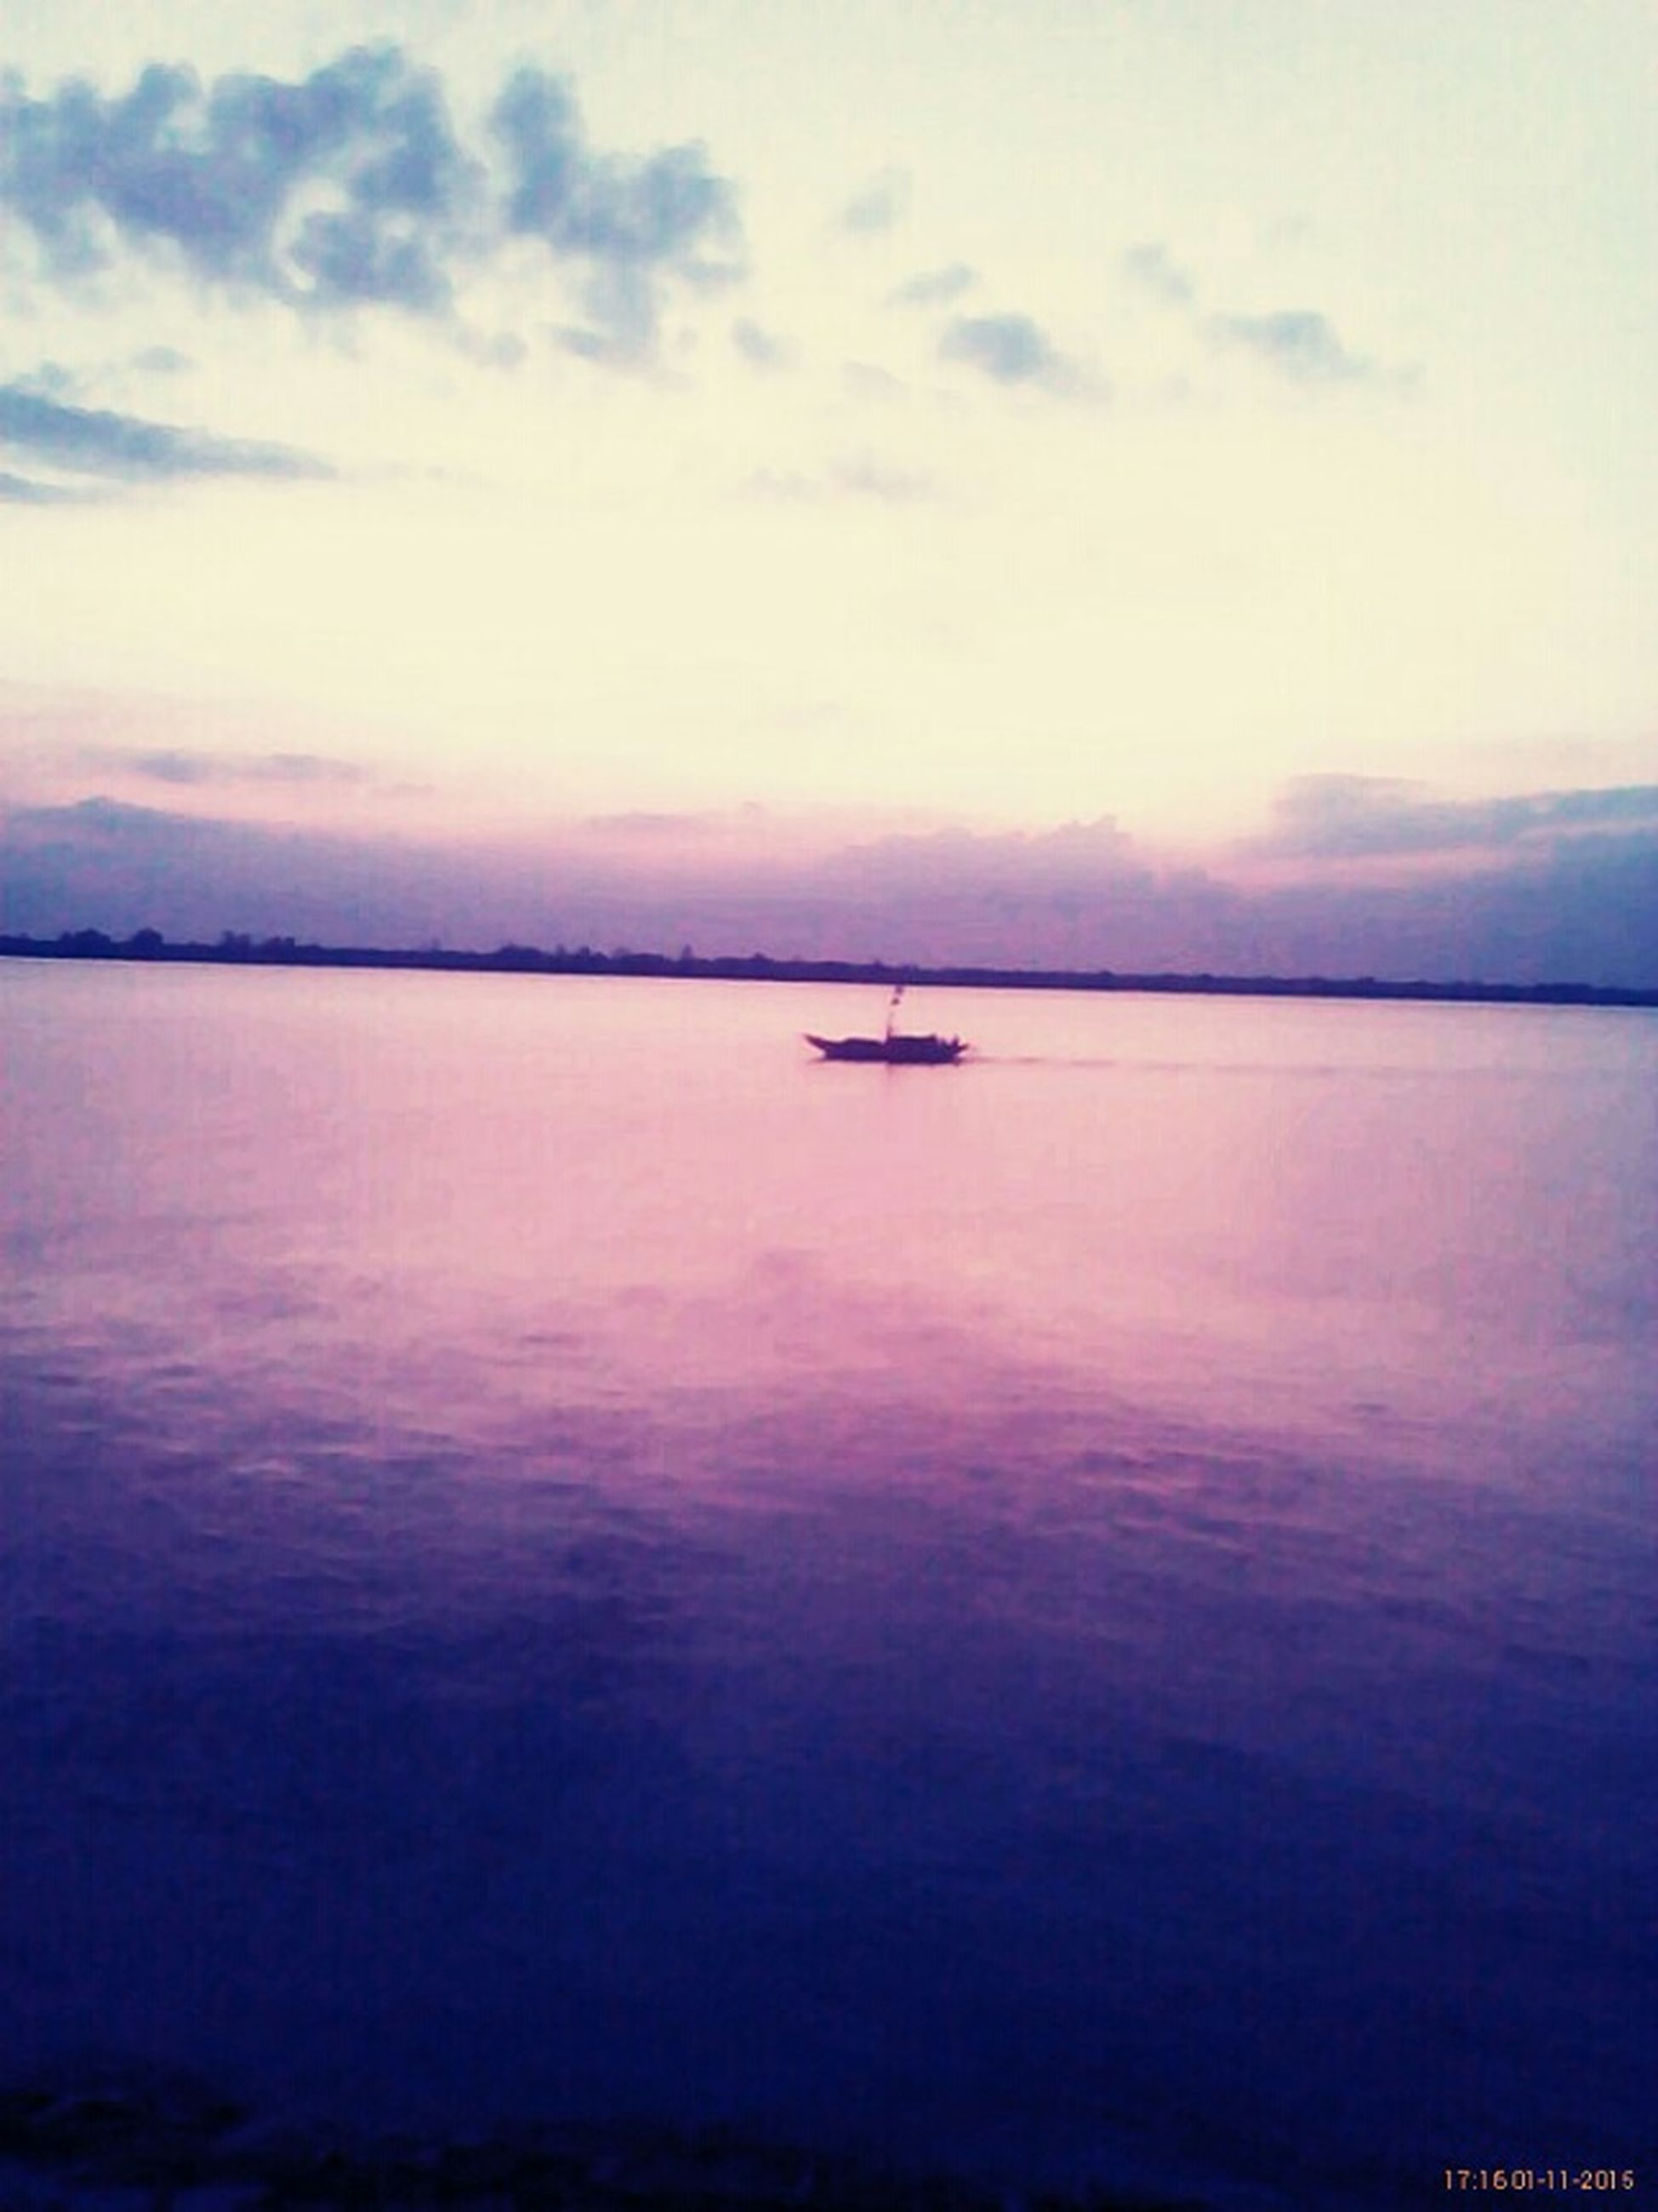 water, tranquil scene, sunset, tranquility, scenics, nautical vessel, sky, beauty in nature, waterfront, transportation, boat, nature, silhouette, mode of transport, sea, lake, cloud - sky, idyllic, reflection, calm